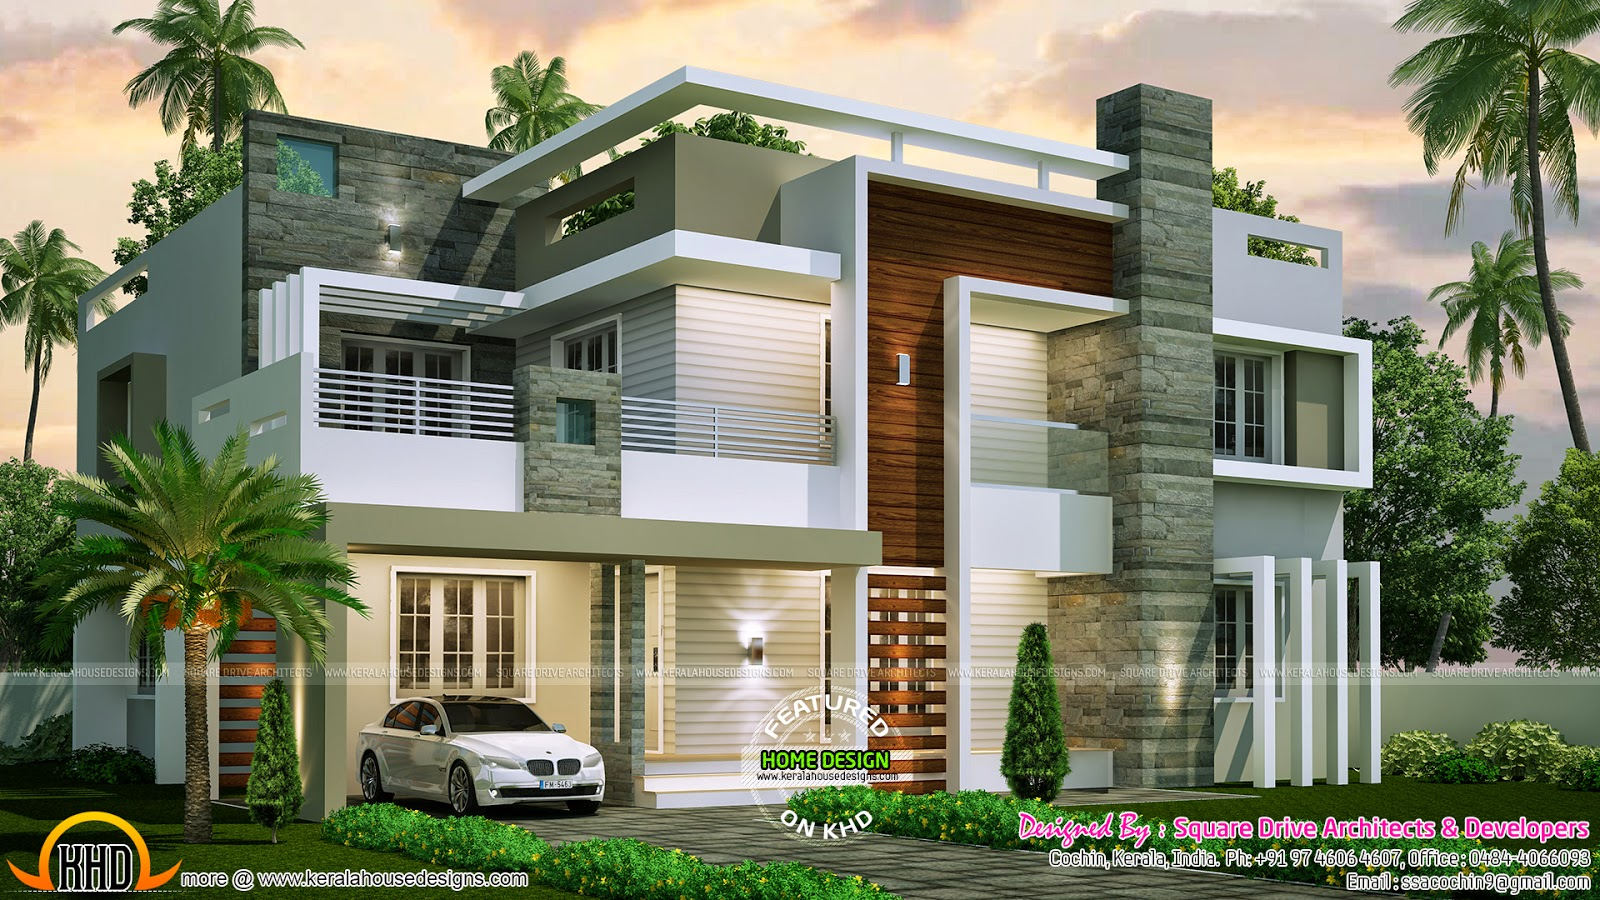 4 bedroom contemporary home design kerala home design and floor plans Design my home